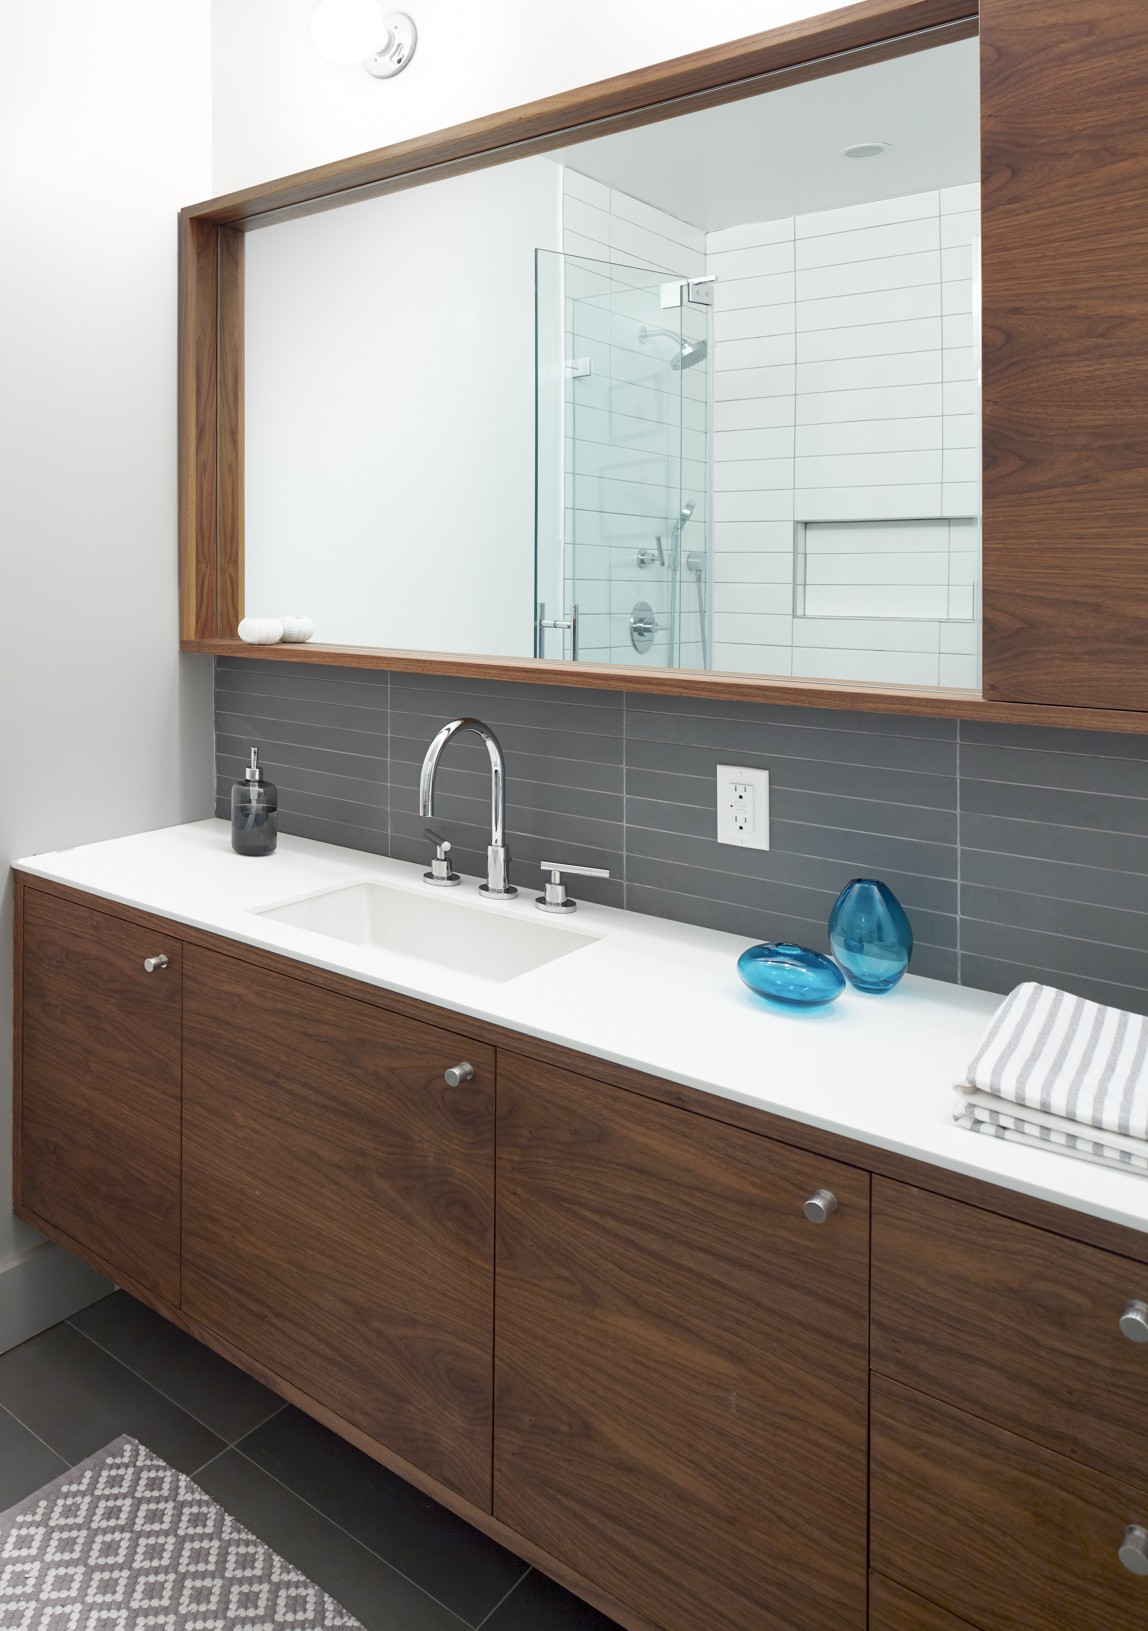 How To Save Money On Your Nyc Bathroom Renovation Where To Skimp And Where To Splurge